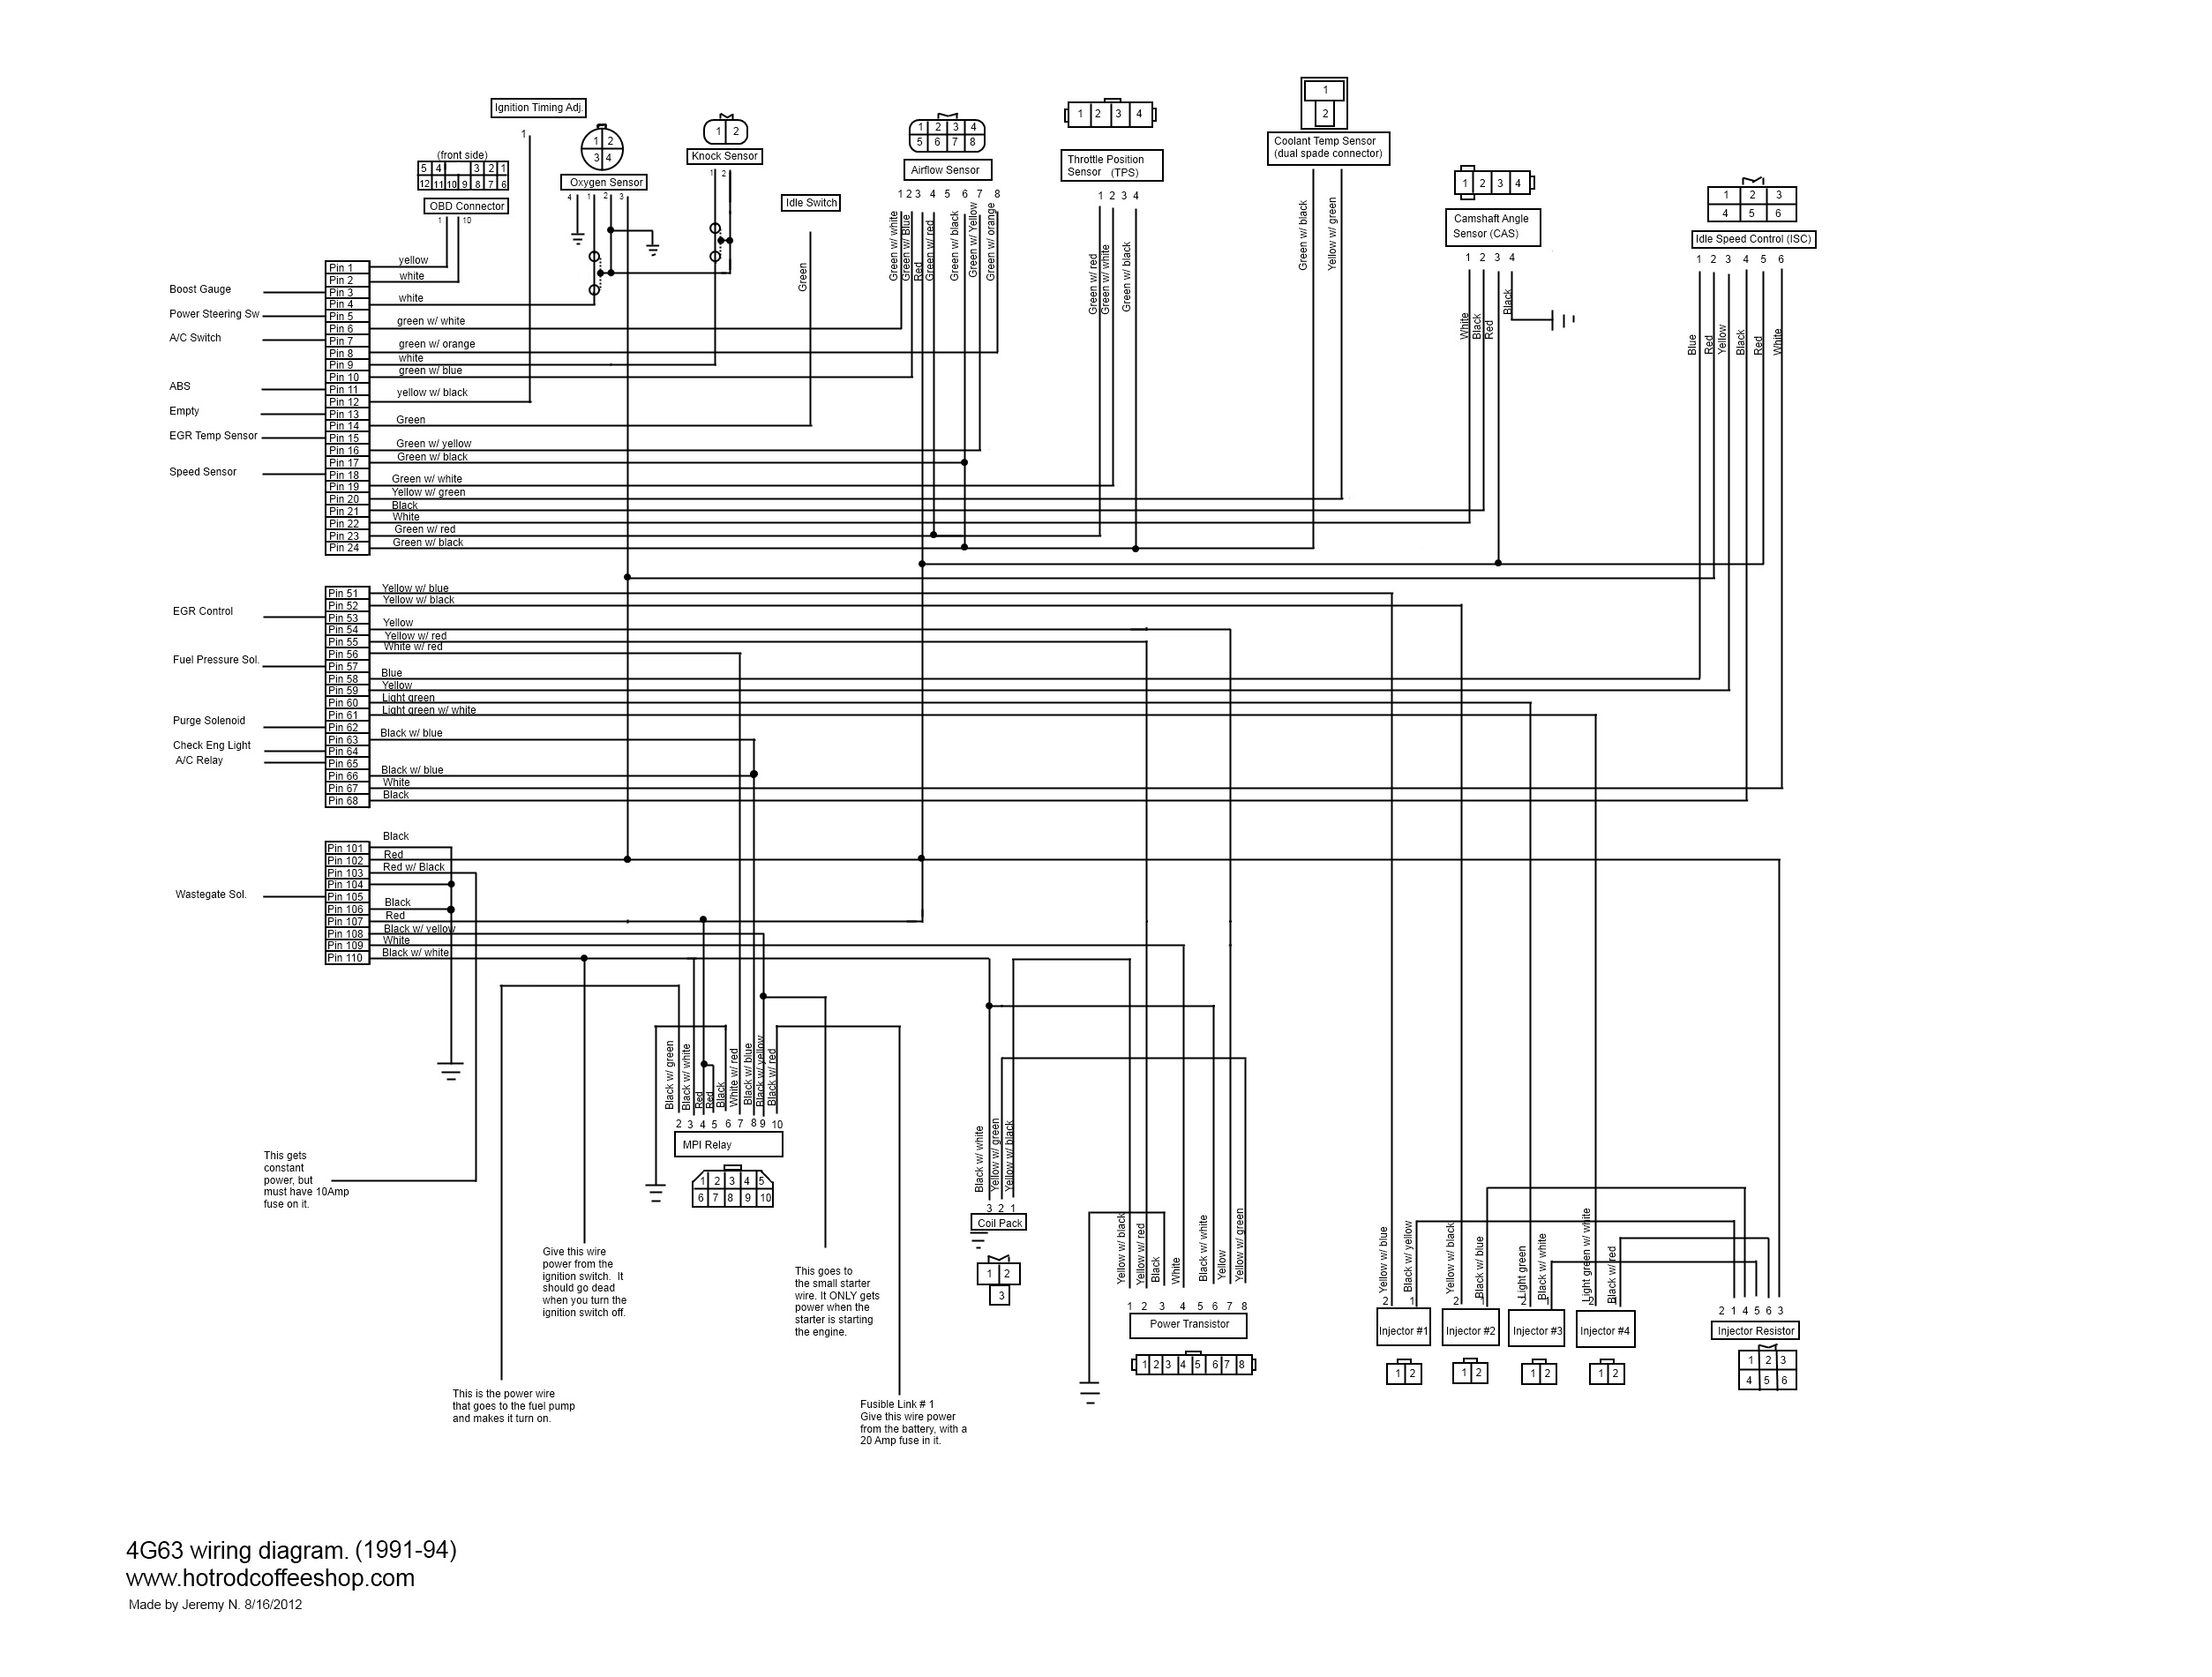 I Made A 4g63 Turbo Wiring Diagram To Help People With